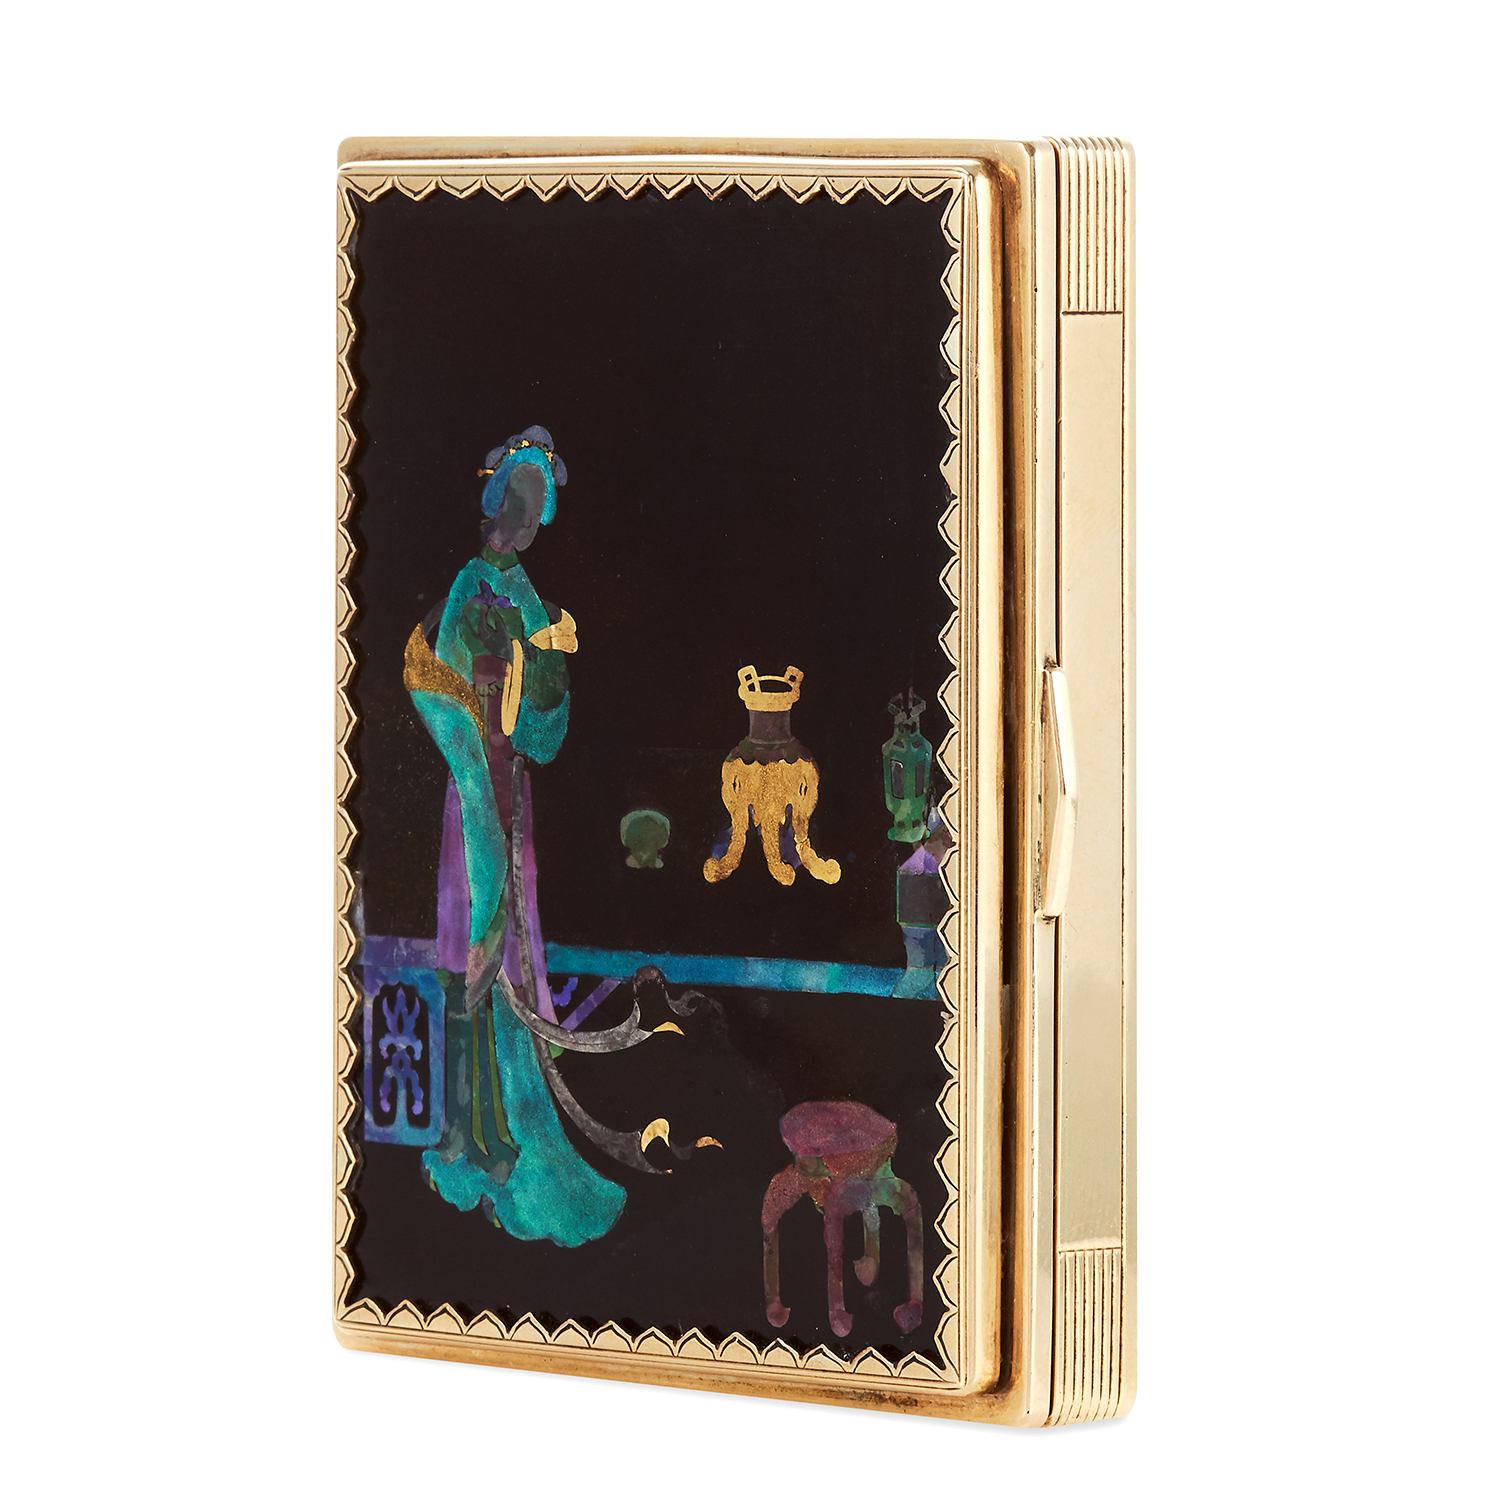 Los 378 - AN ANTIQUE LACQUE BURGAUTÉ CHINOISERIE VANITY CASE, CARTIER CIRCA 1920 in high carat yellow gold,